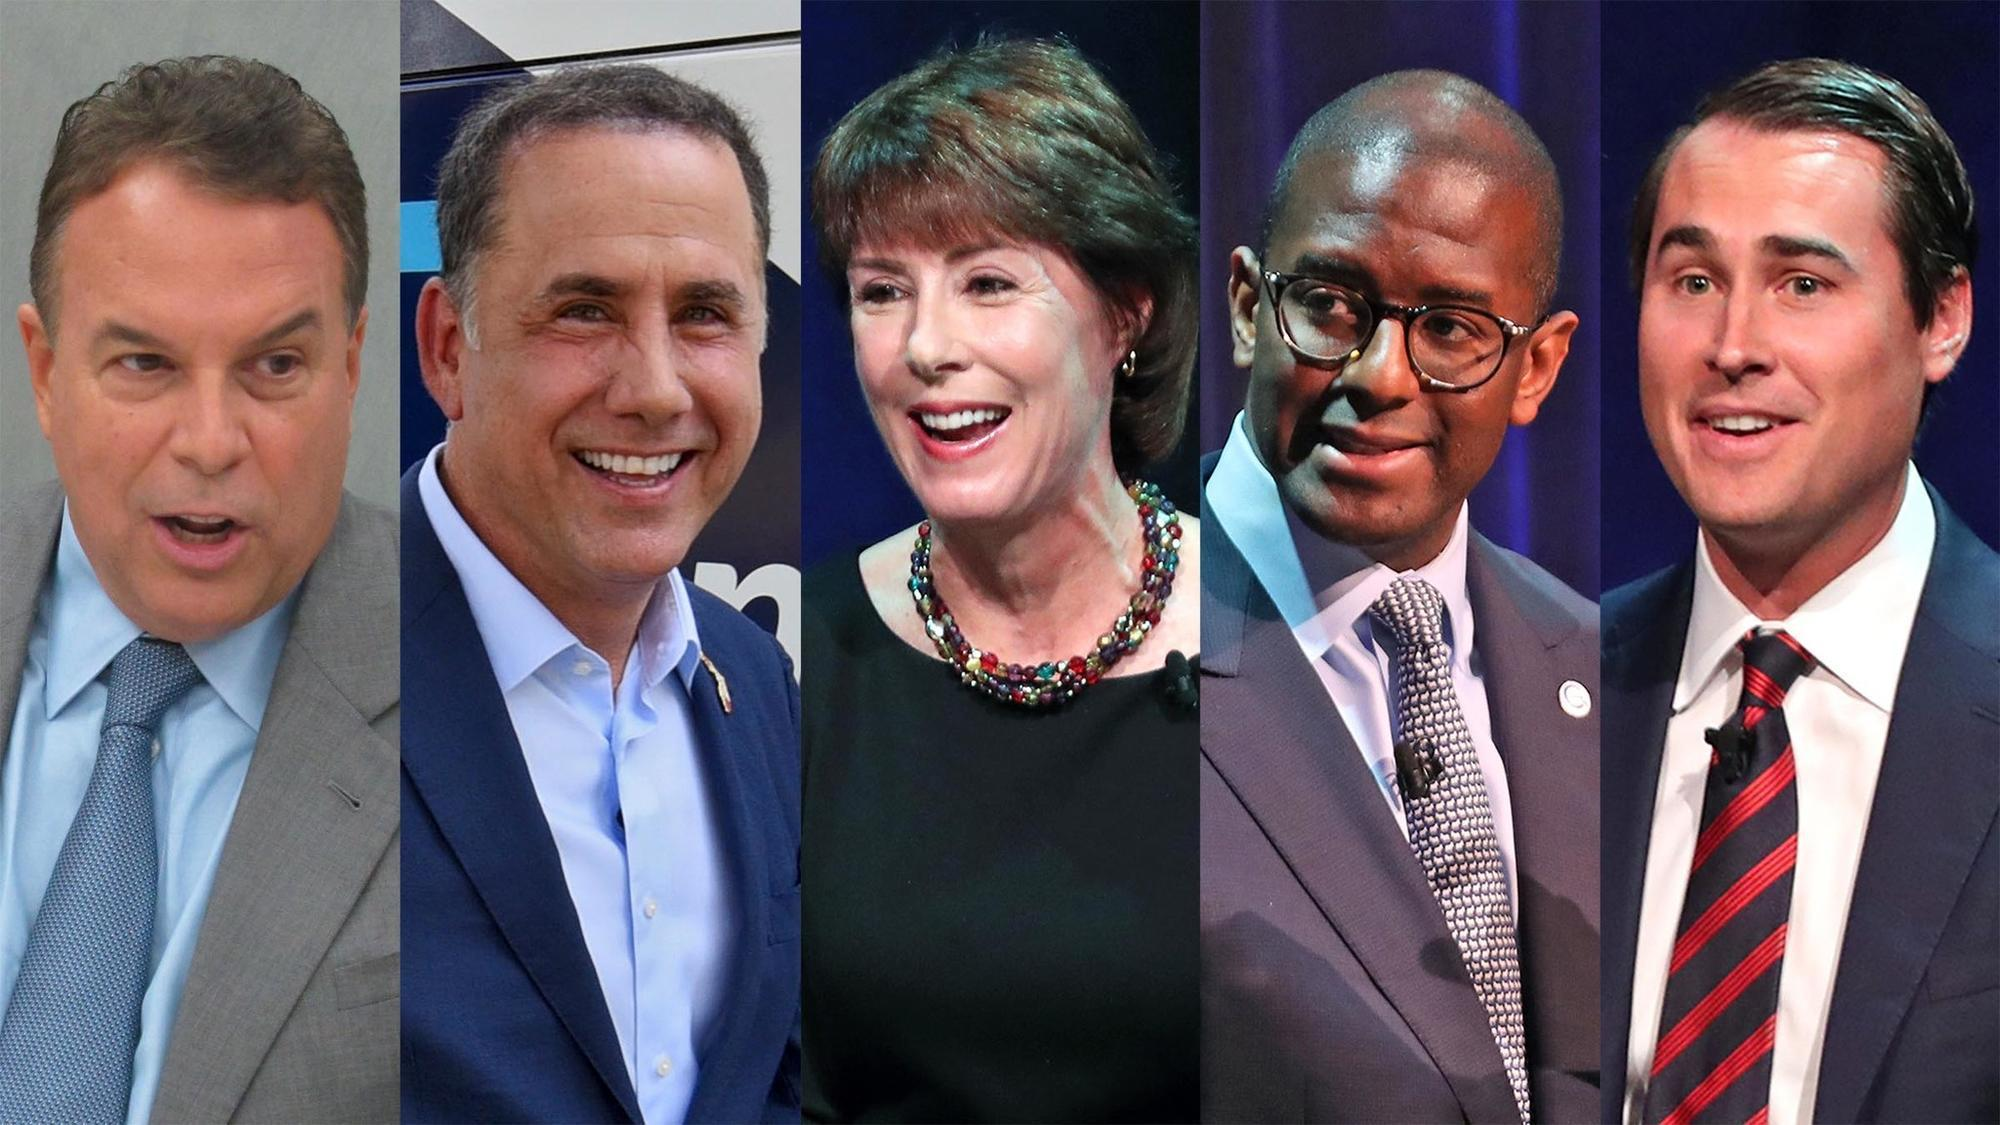 Democratic governor candidates see 2018 as their year ...